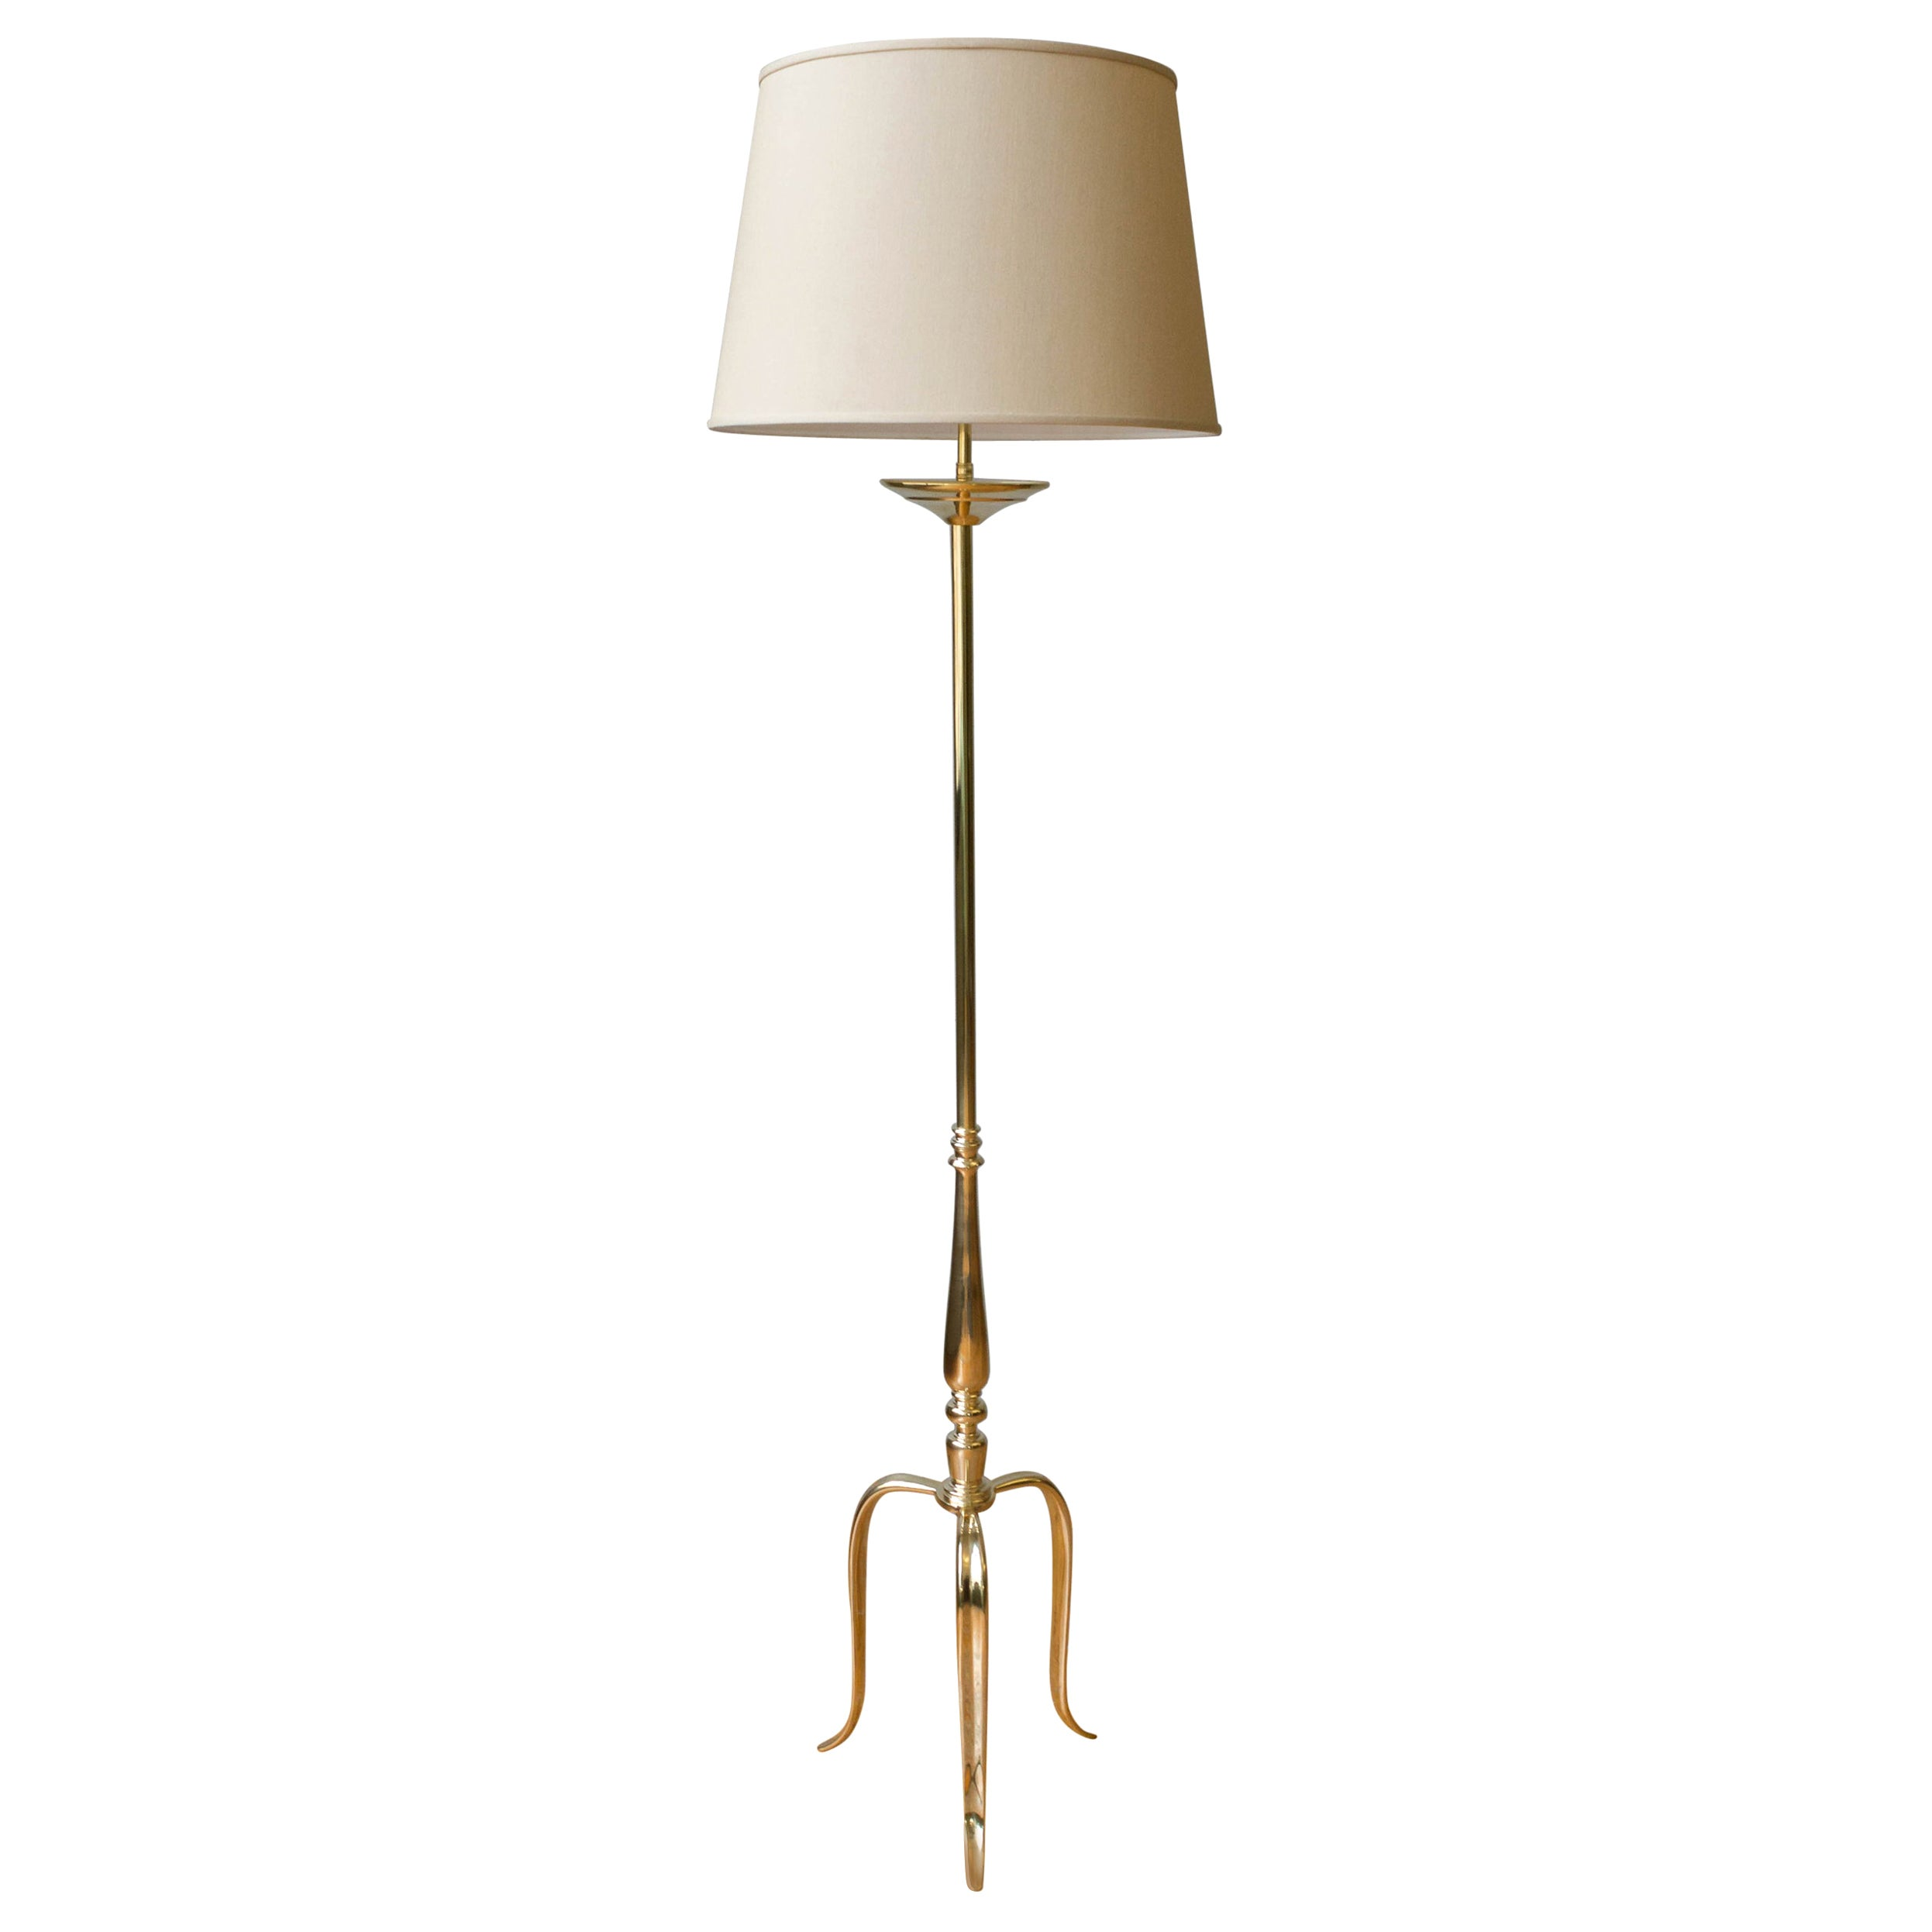 Polished Brass Floor Lamp with Tripod Base